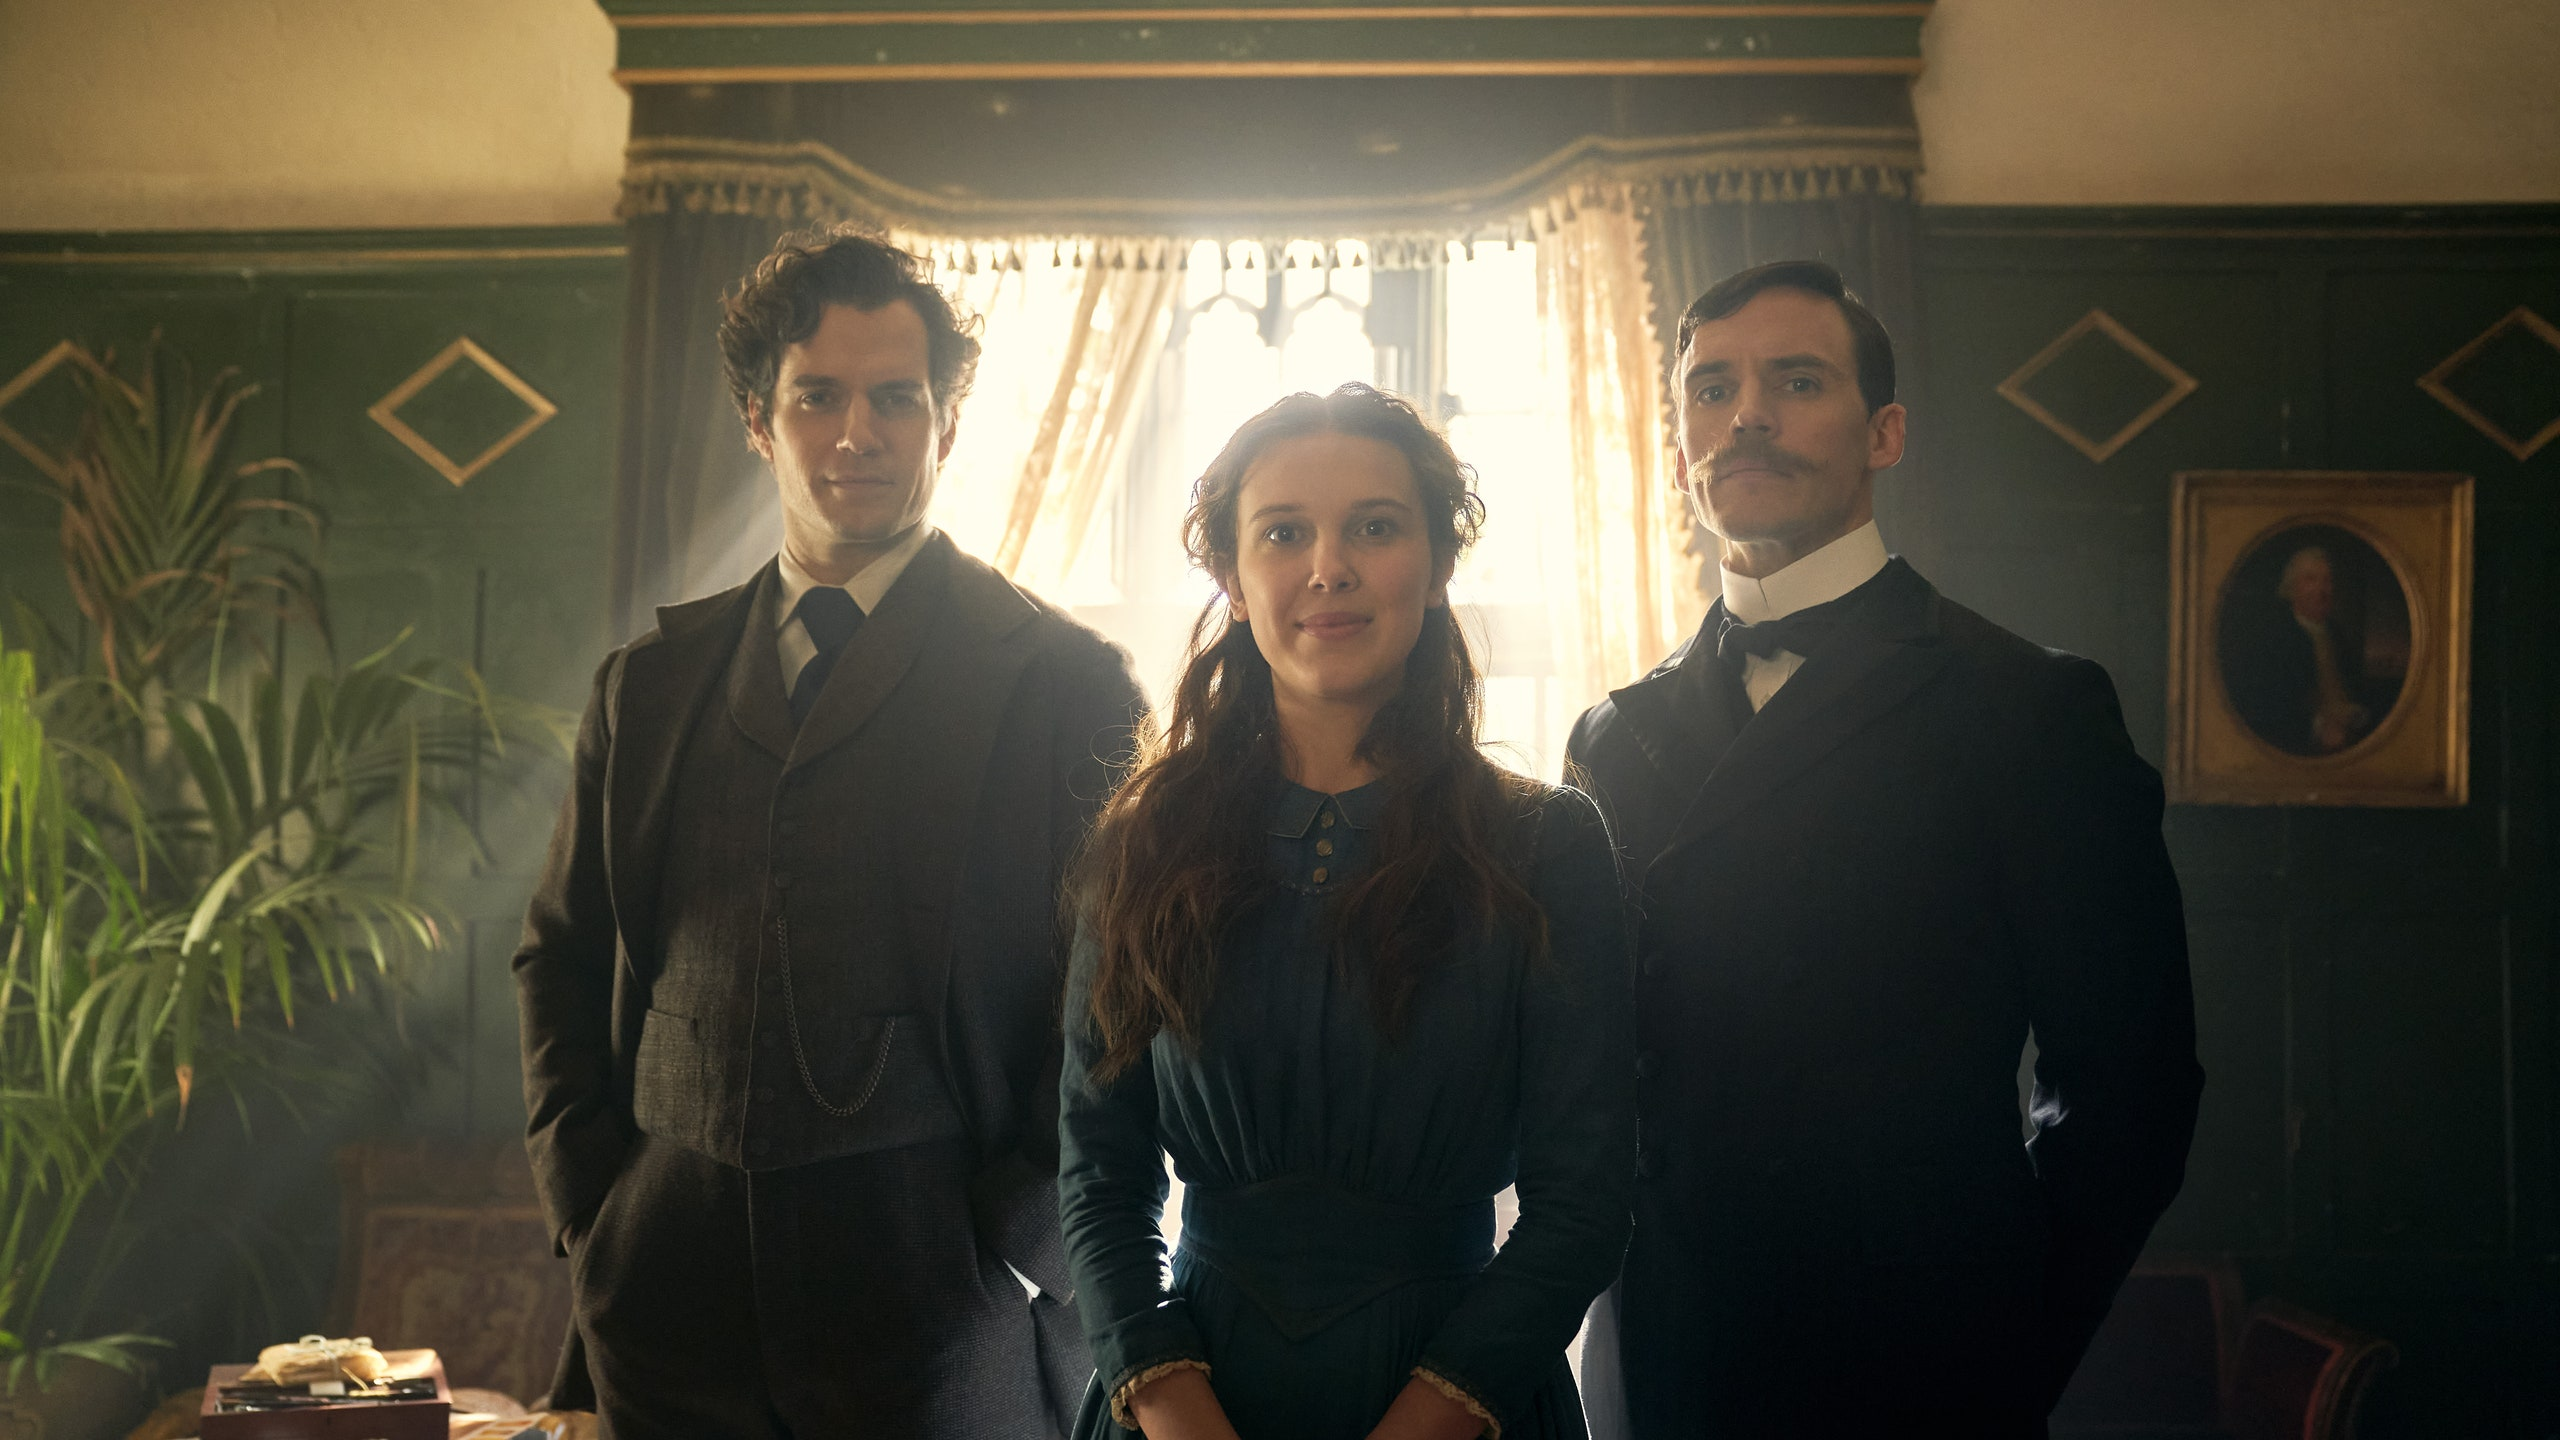 Feel the movie Enola Holmes with a feminist message